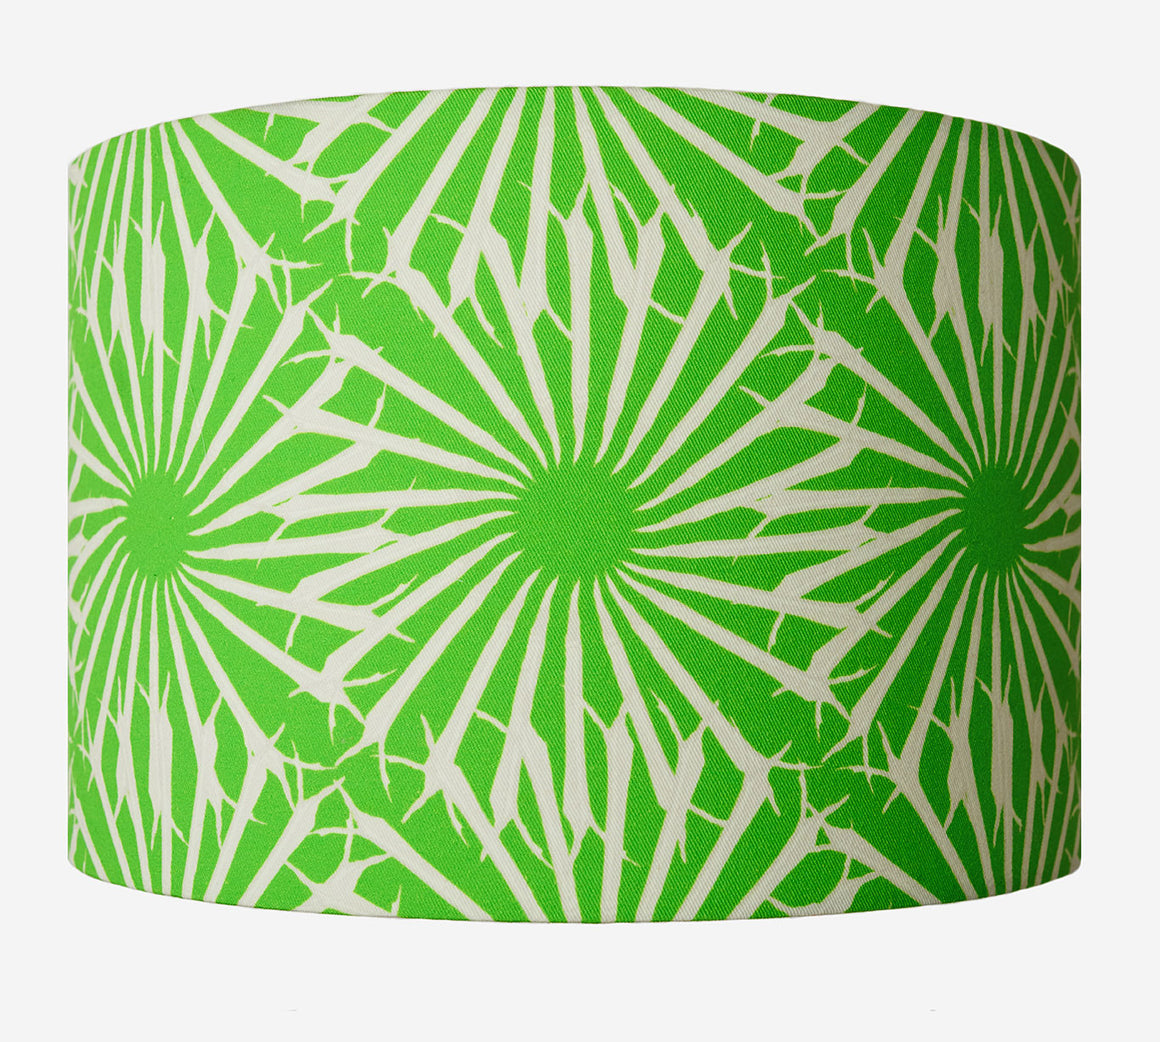 green lampshade - Beak Street in Grass by Anna Jacobs